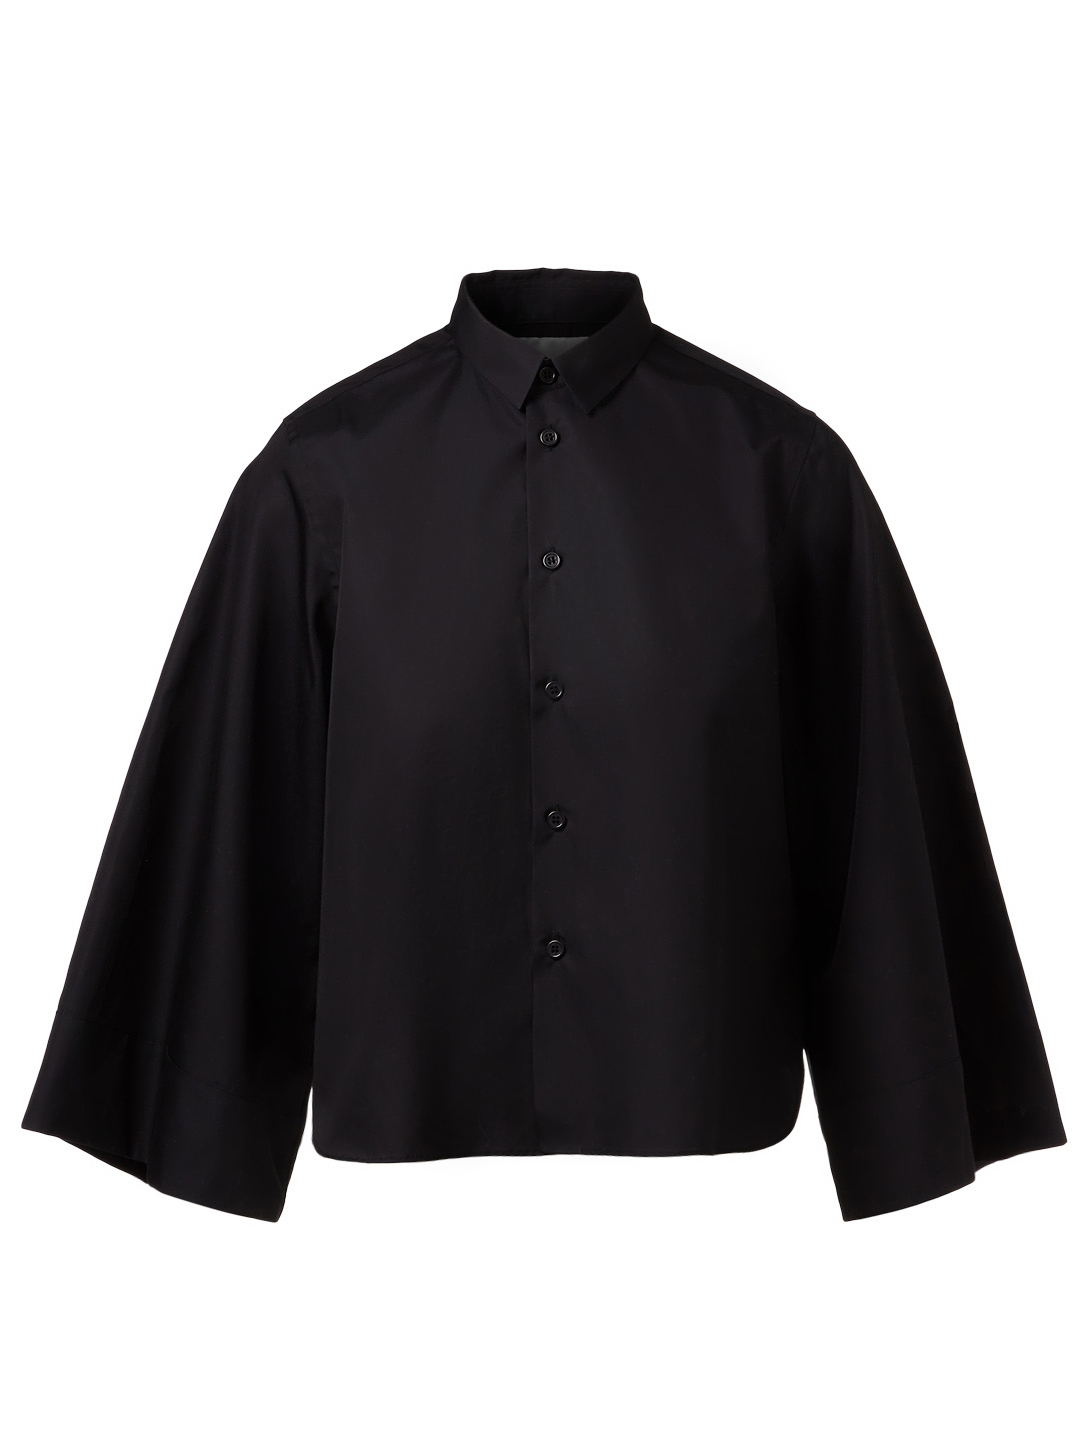 NOIR KEI NINOMIYA Button-Up Shirt With Flared Sleeves Womens Black